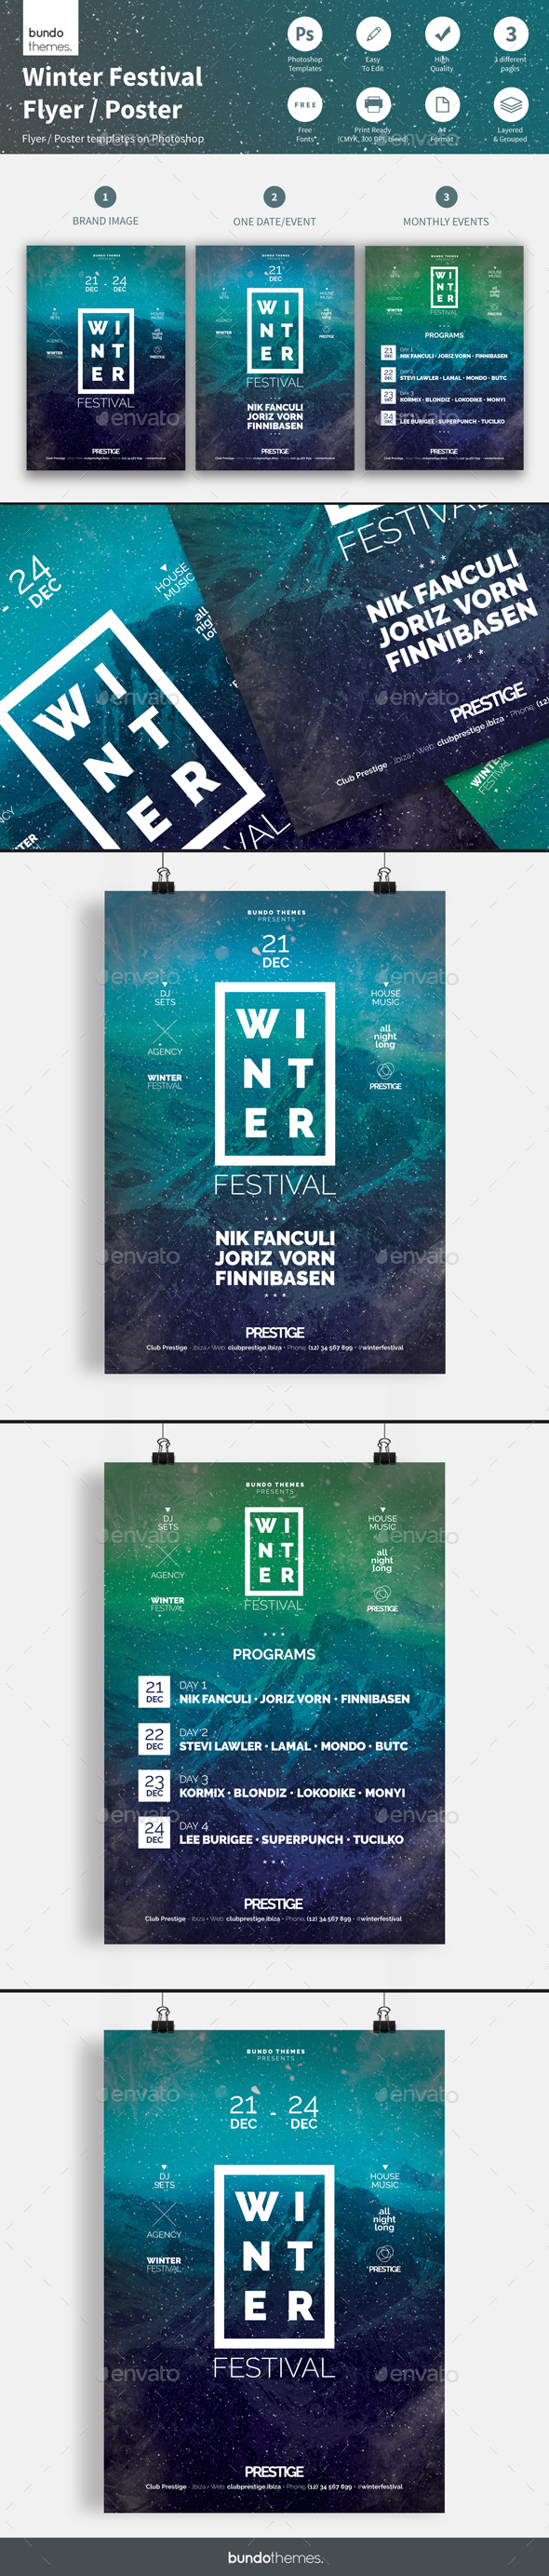 Winter Festival Flyer / Poster - Concerts Events